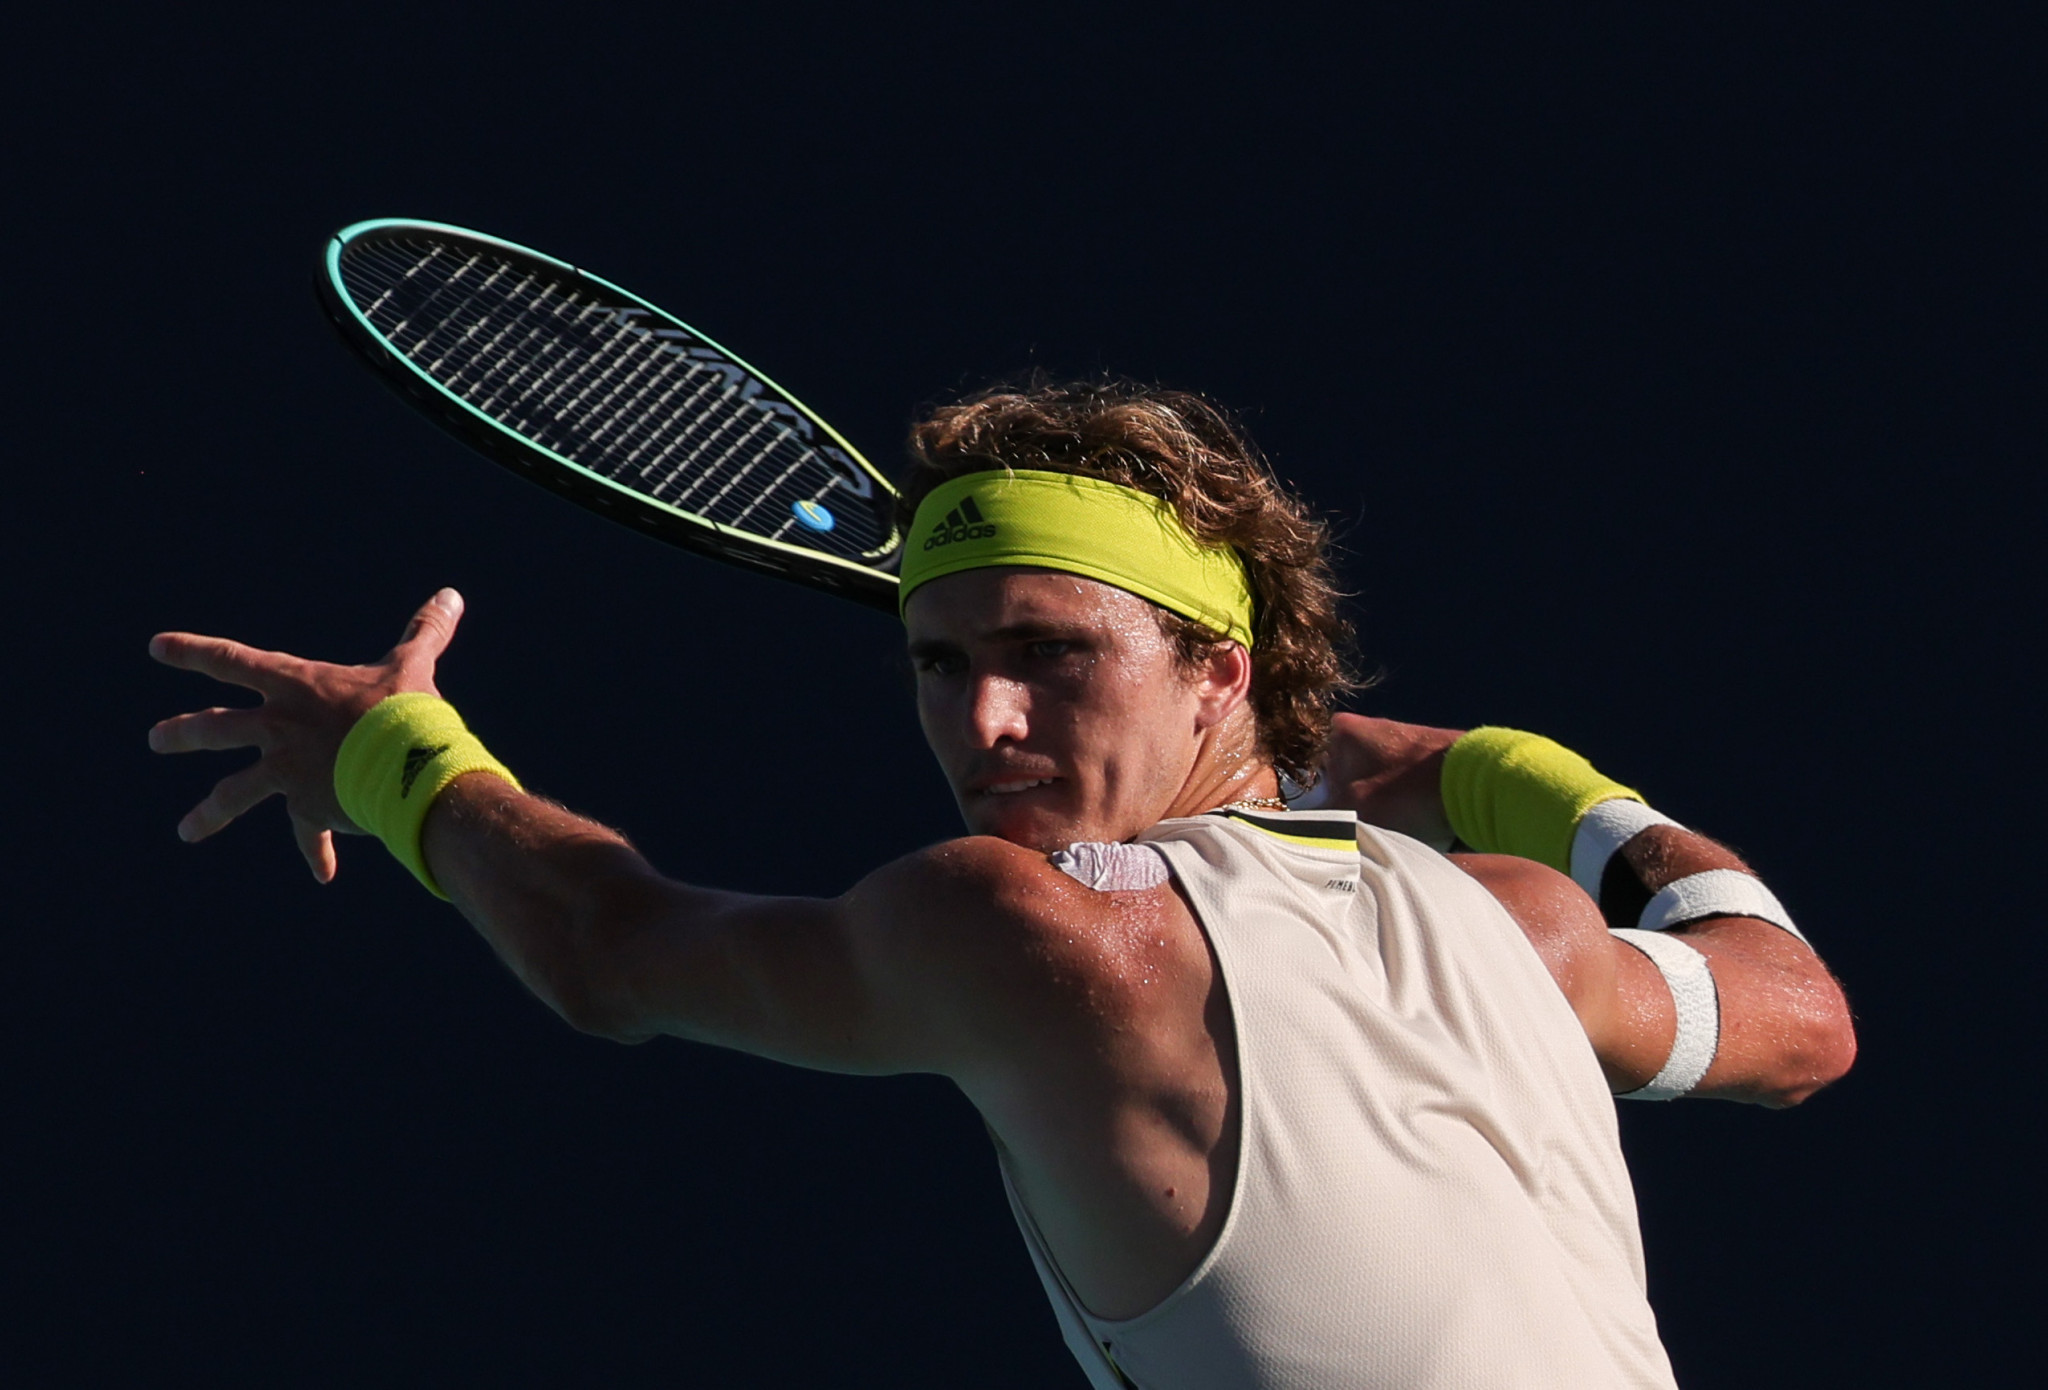 Alexander Zverev has been knocked out in the second round of the Miami Open ©Getty Images